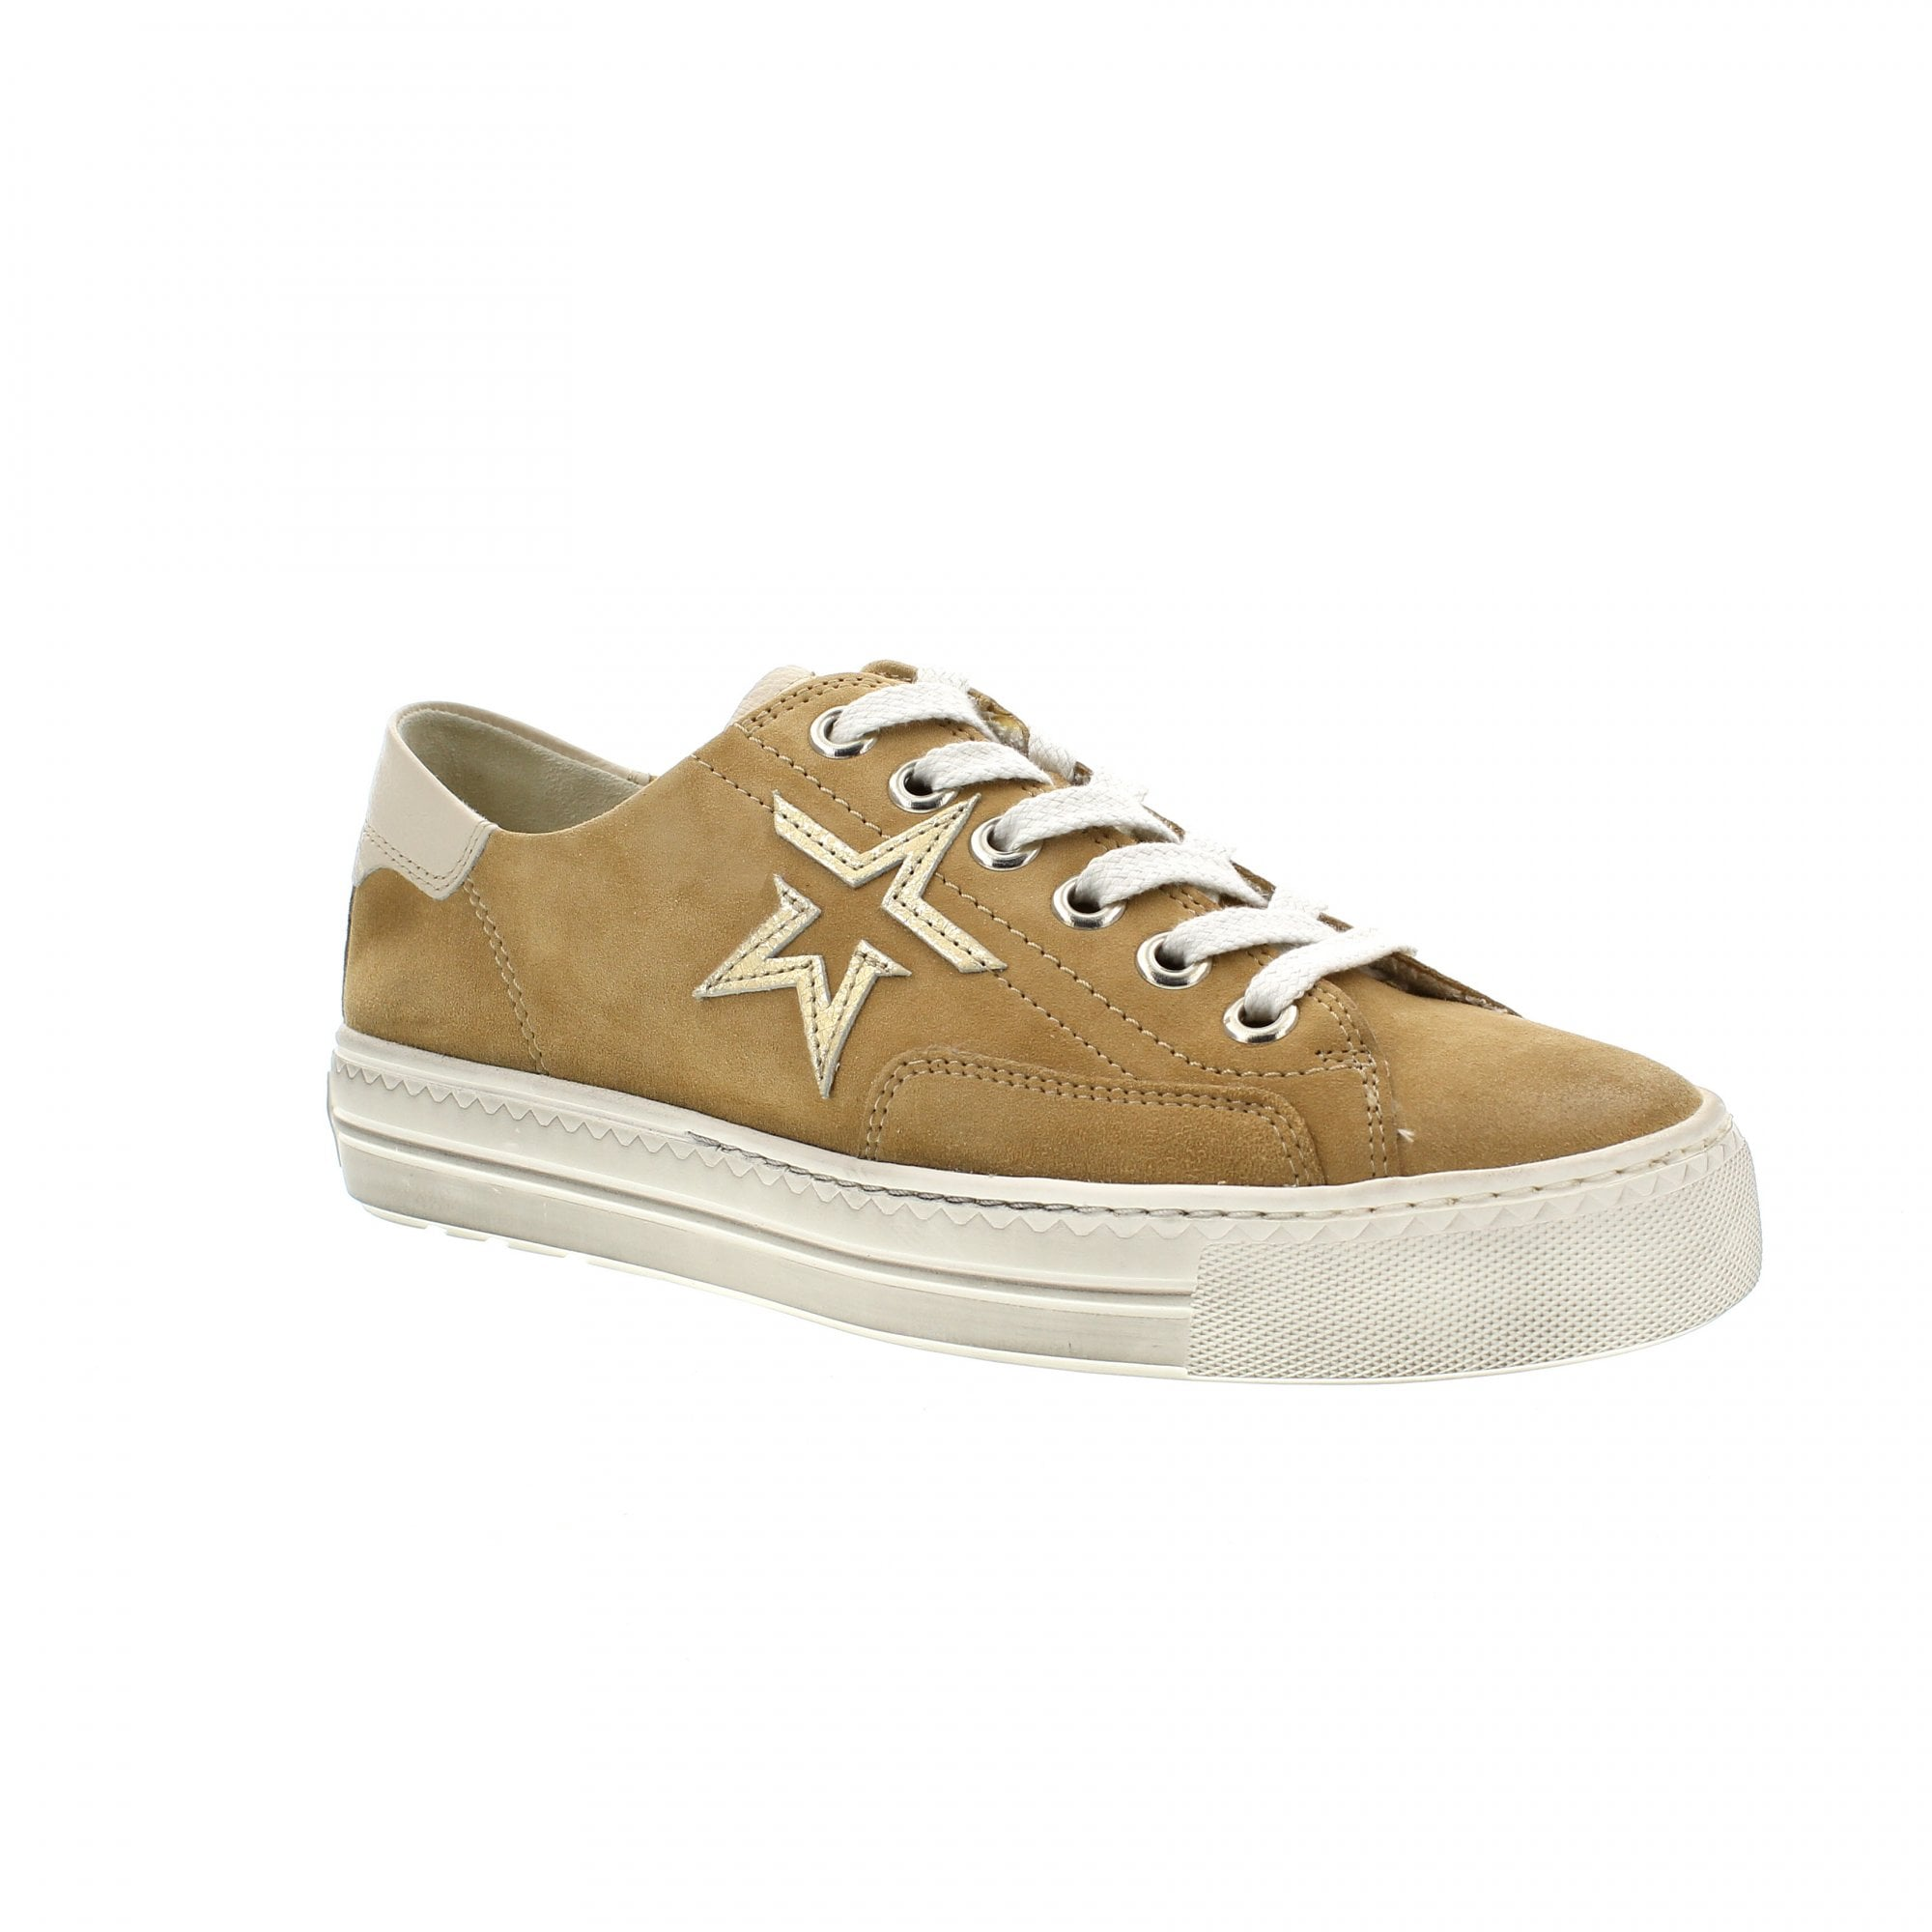 4810 206 Camel Suede Womens Trainers